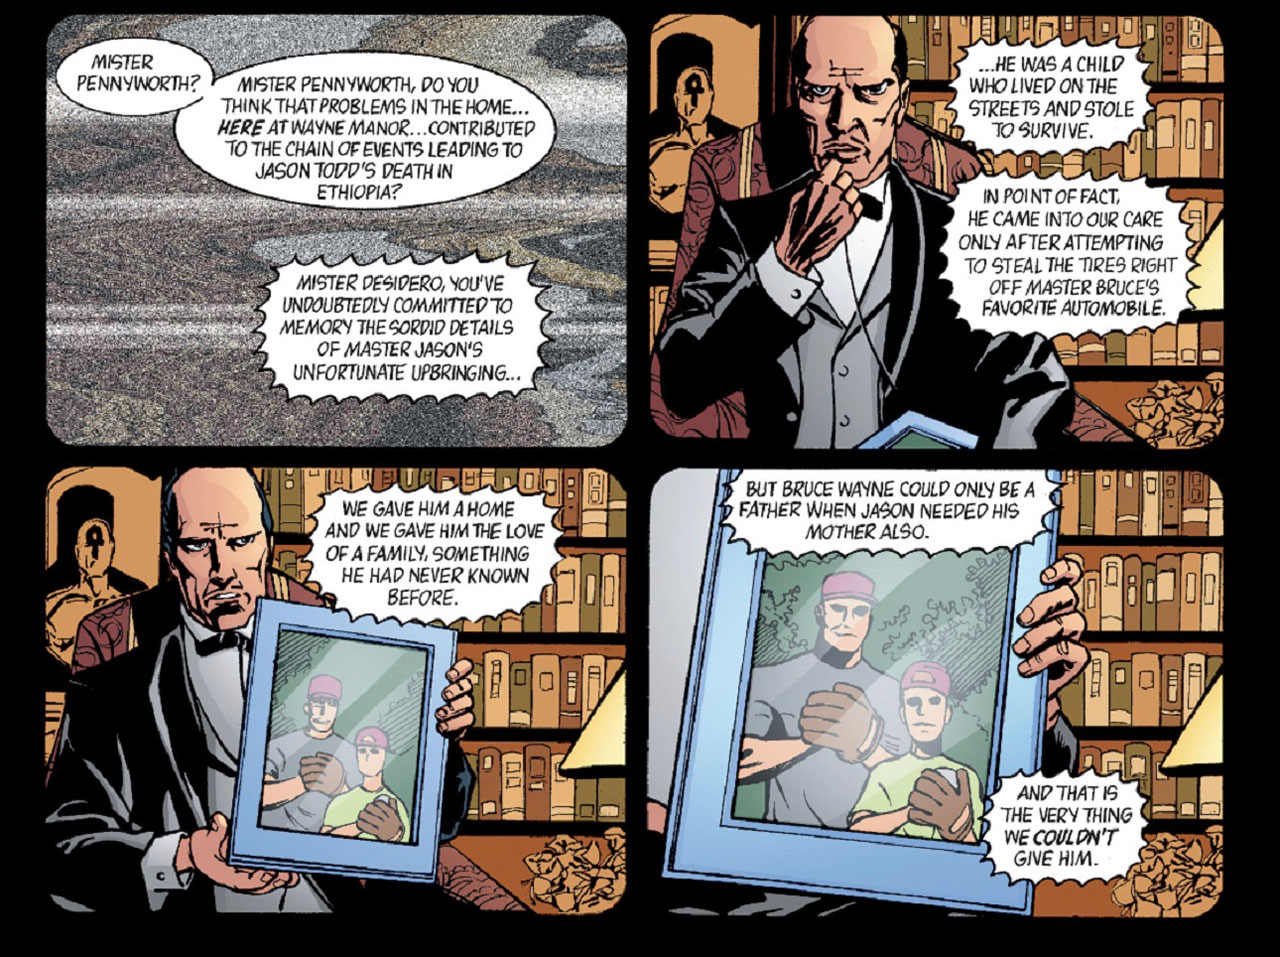 Alfred-Pennyworth-Child-Services-Interview.jpg